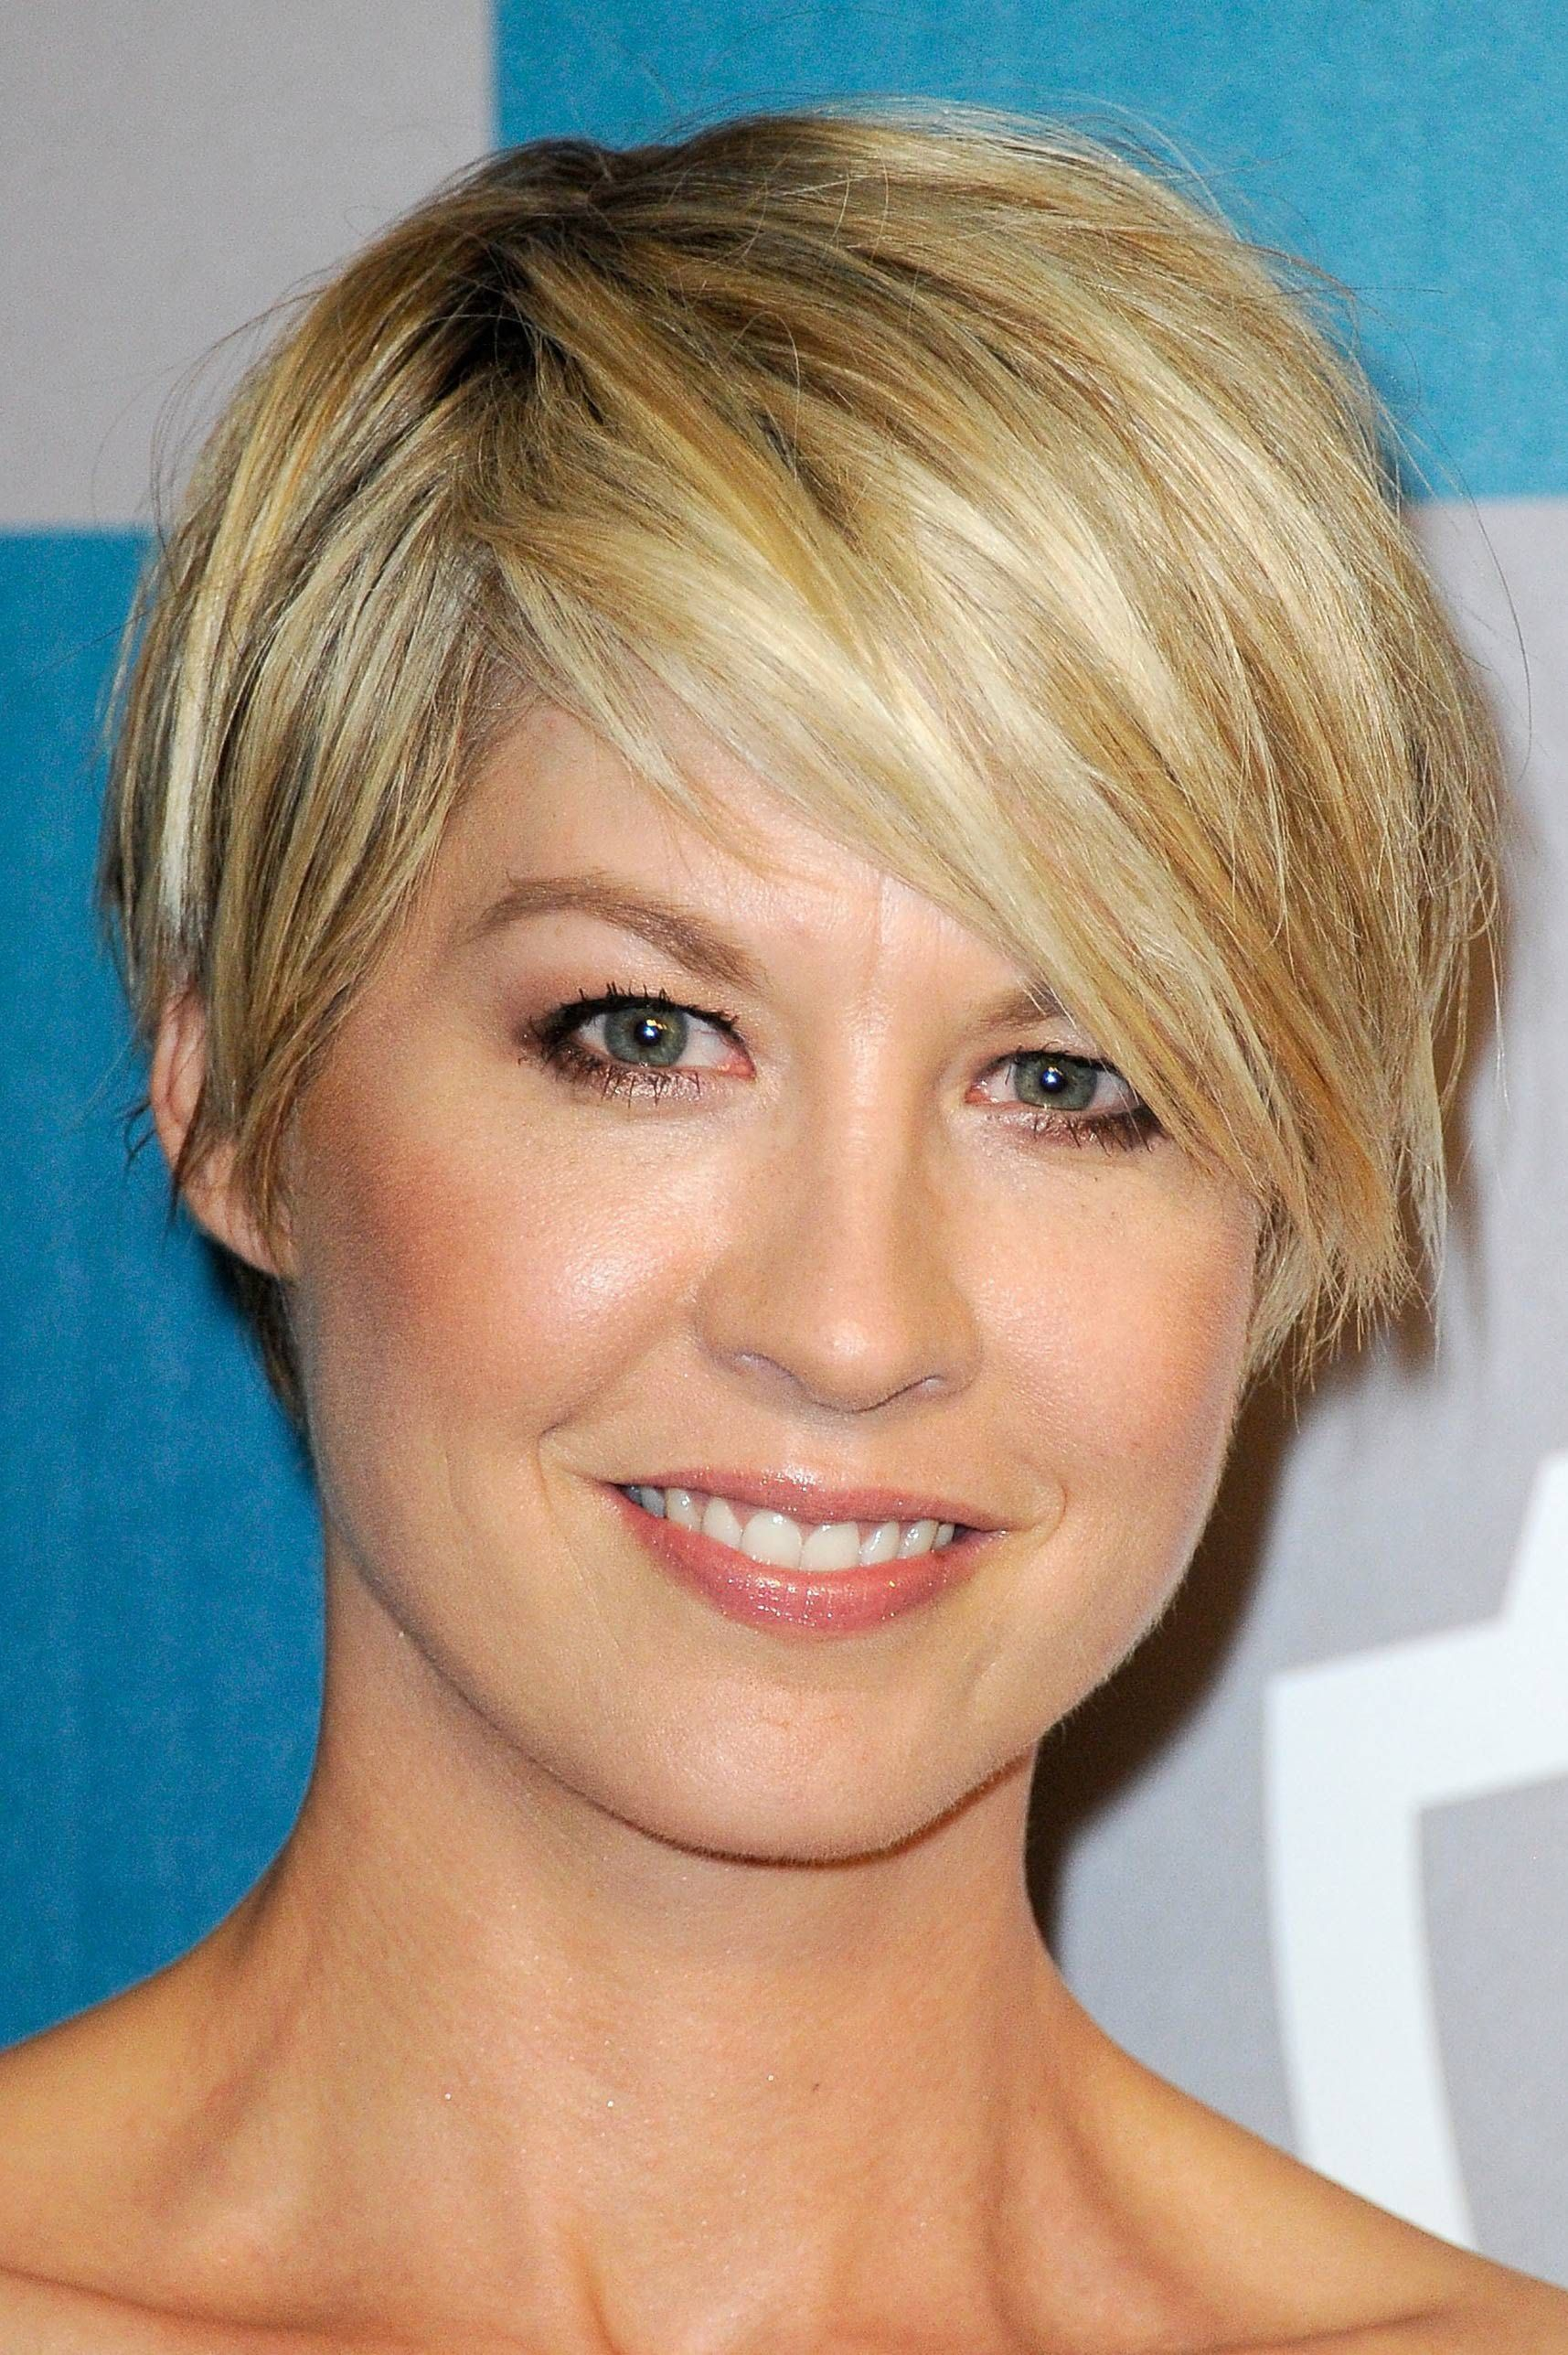 thinking of going shorter? here are 60+ short hairstyles to